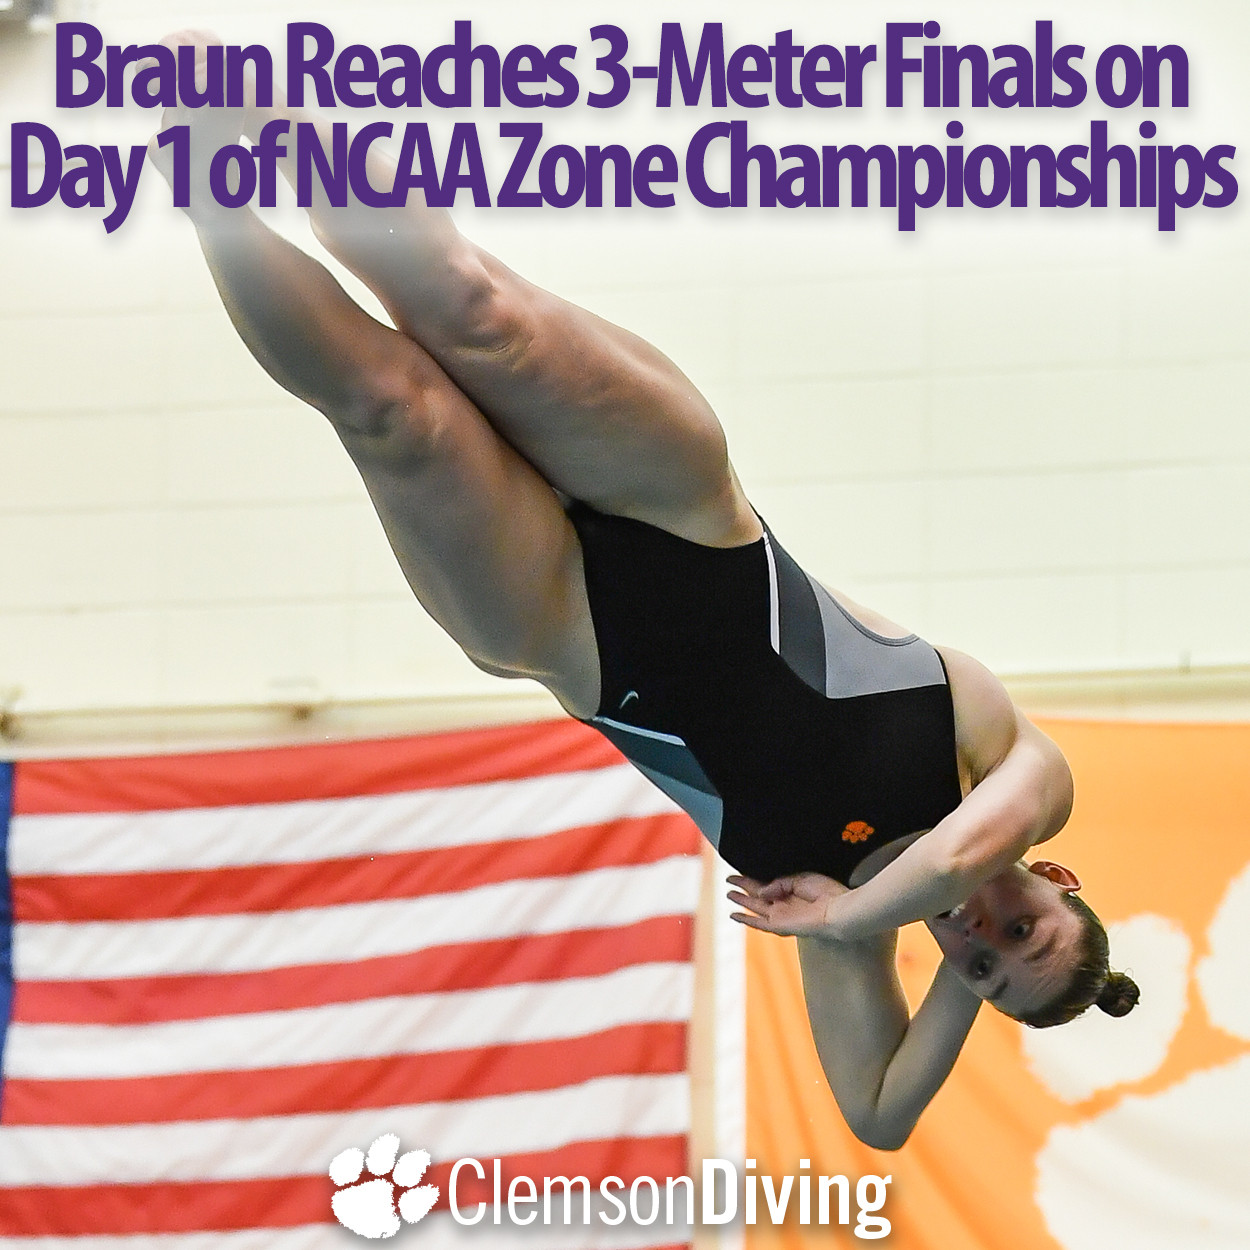 Braun Reaches Finals to Highlight 3-Meter Action at NCAA Zones Monday